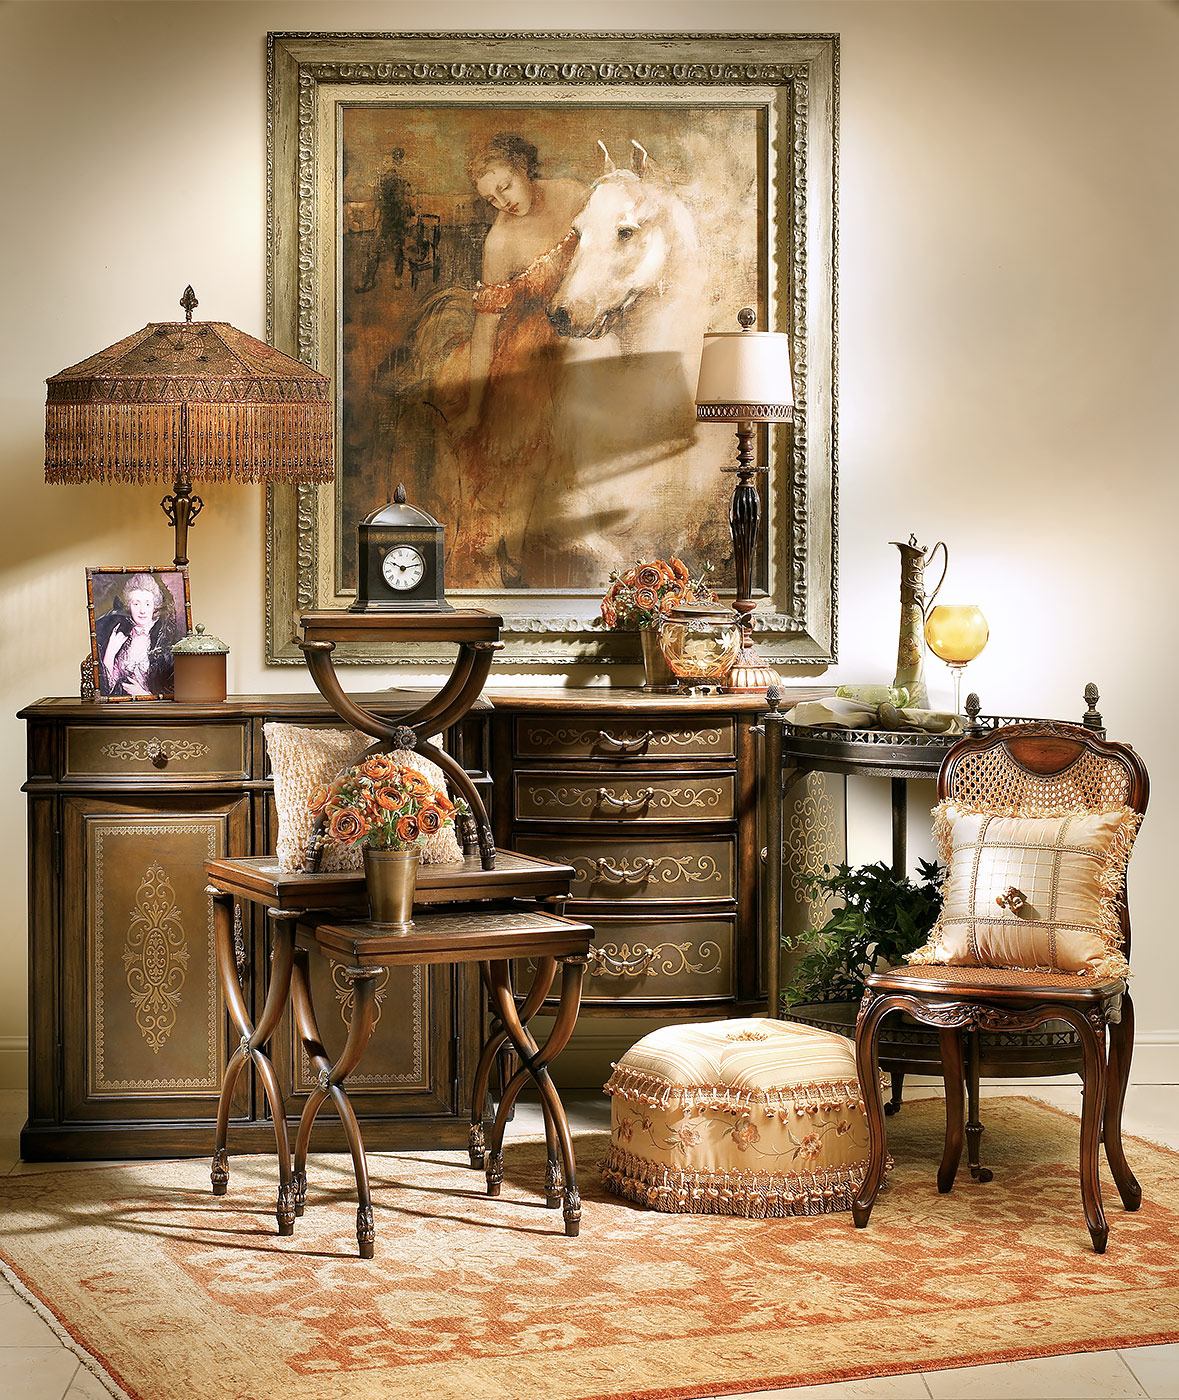 Rob-Stucky-Antique-Brass-Furnishings-Accessories